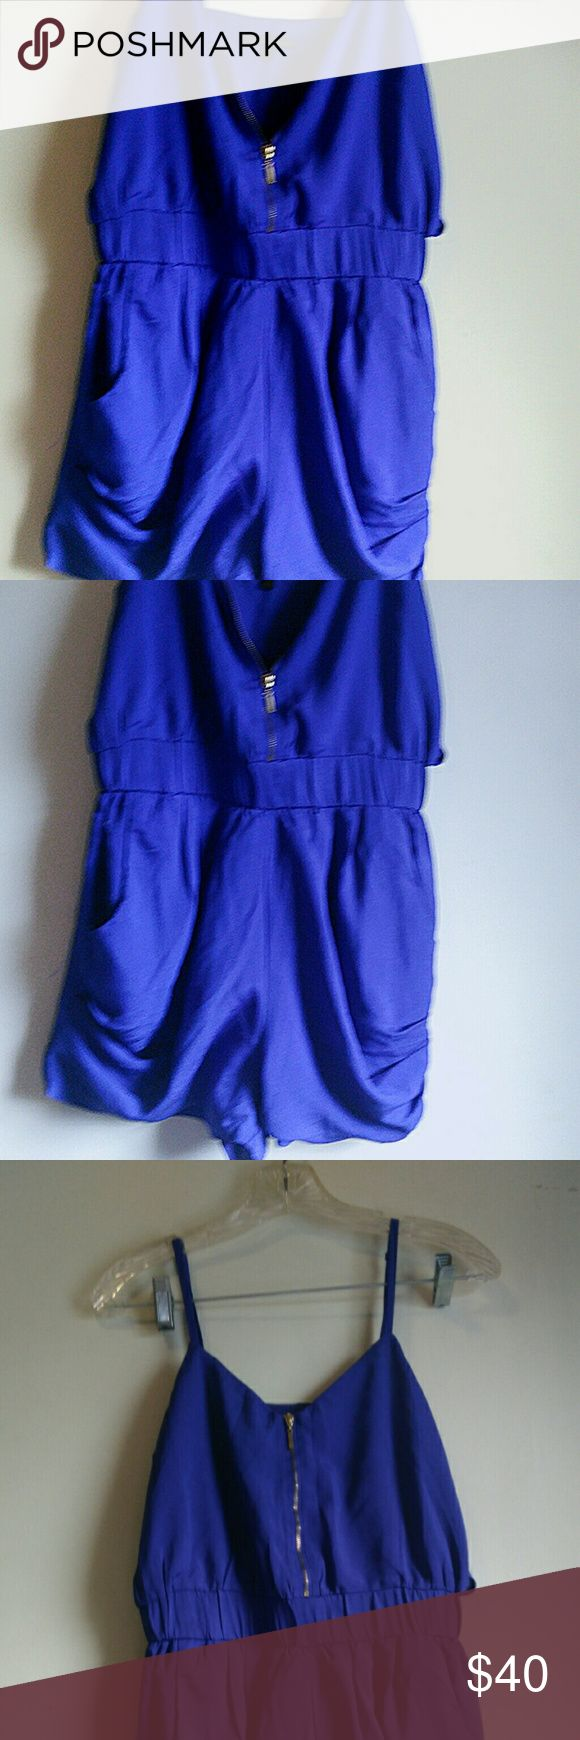 Cobalt blue romper, xs, lucci couture Adorable romper with zipper, accentuated waist, by lucci couture,size xs Lucca Couture Other